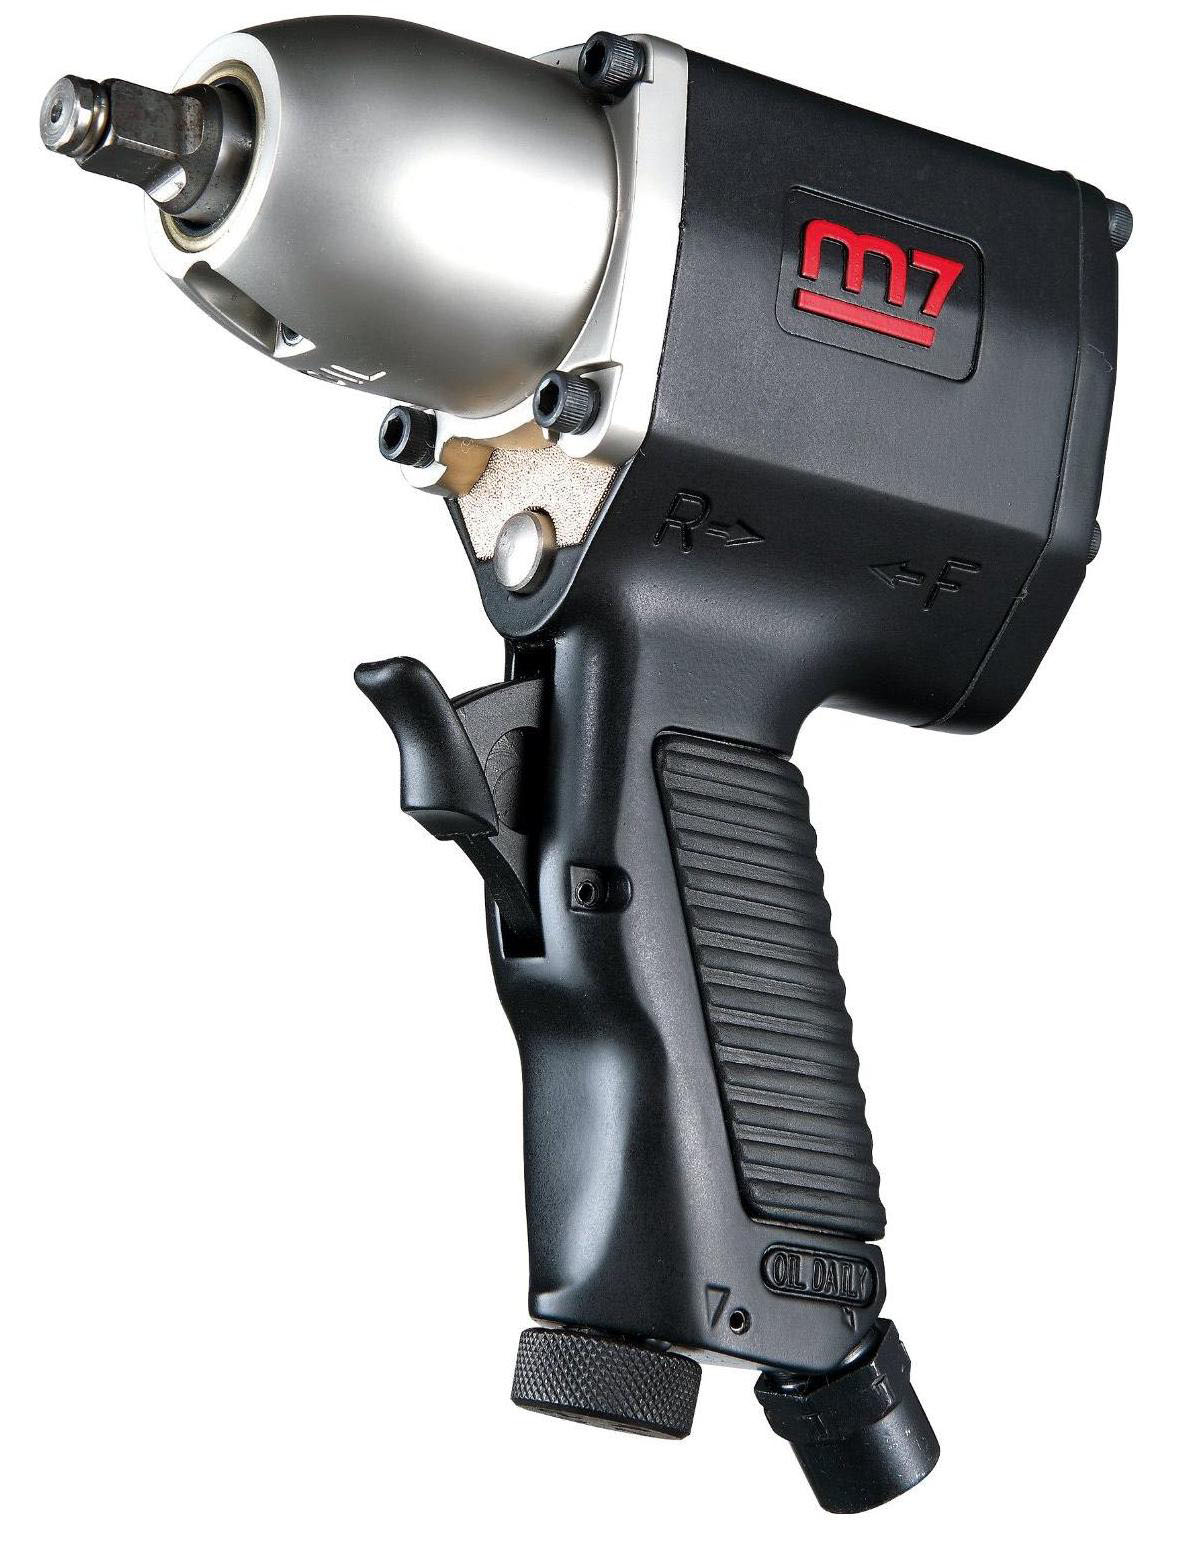 MIGHTY SEVEN NC-3111 - 3/8in Drive Air Impact Wrench; 160 FT-LB Max Torque